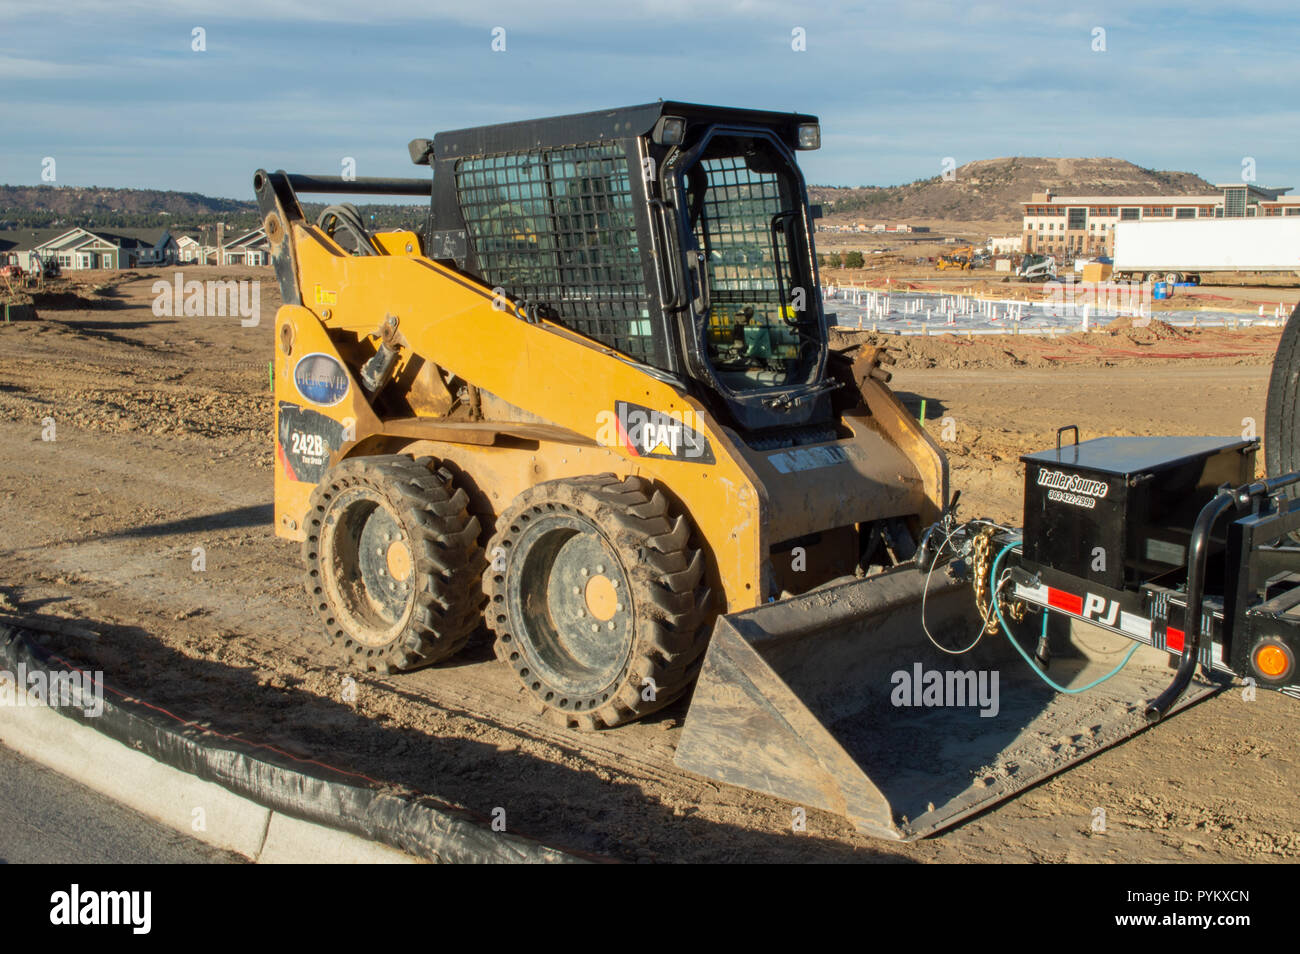 Bull Dozer Stock Photos & Bull Dozer Stock Images - Alamy